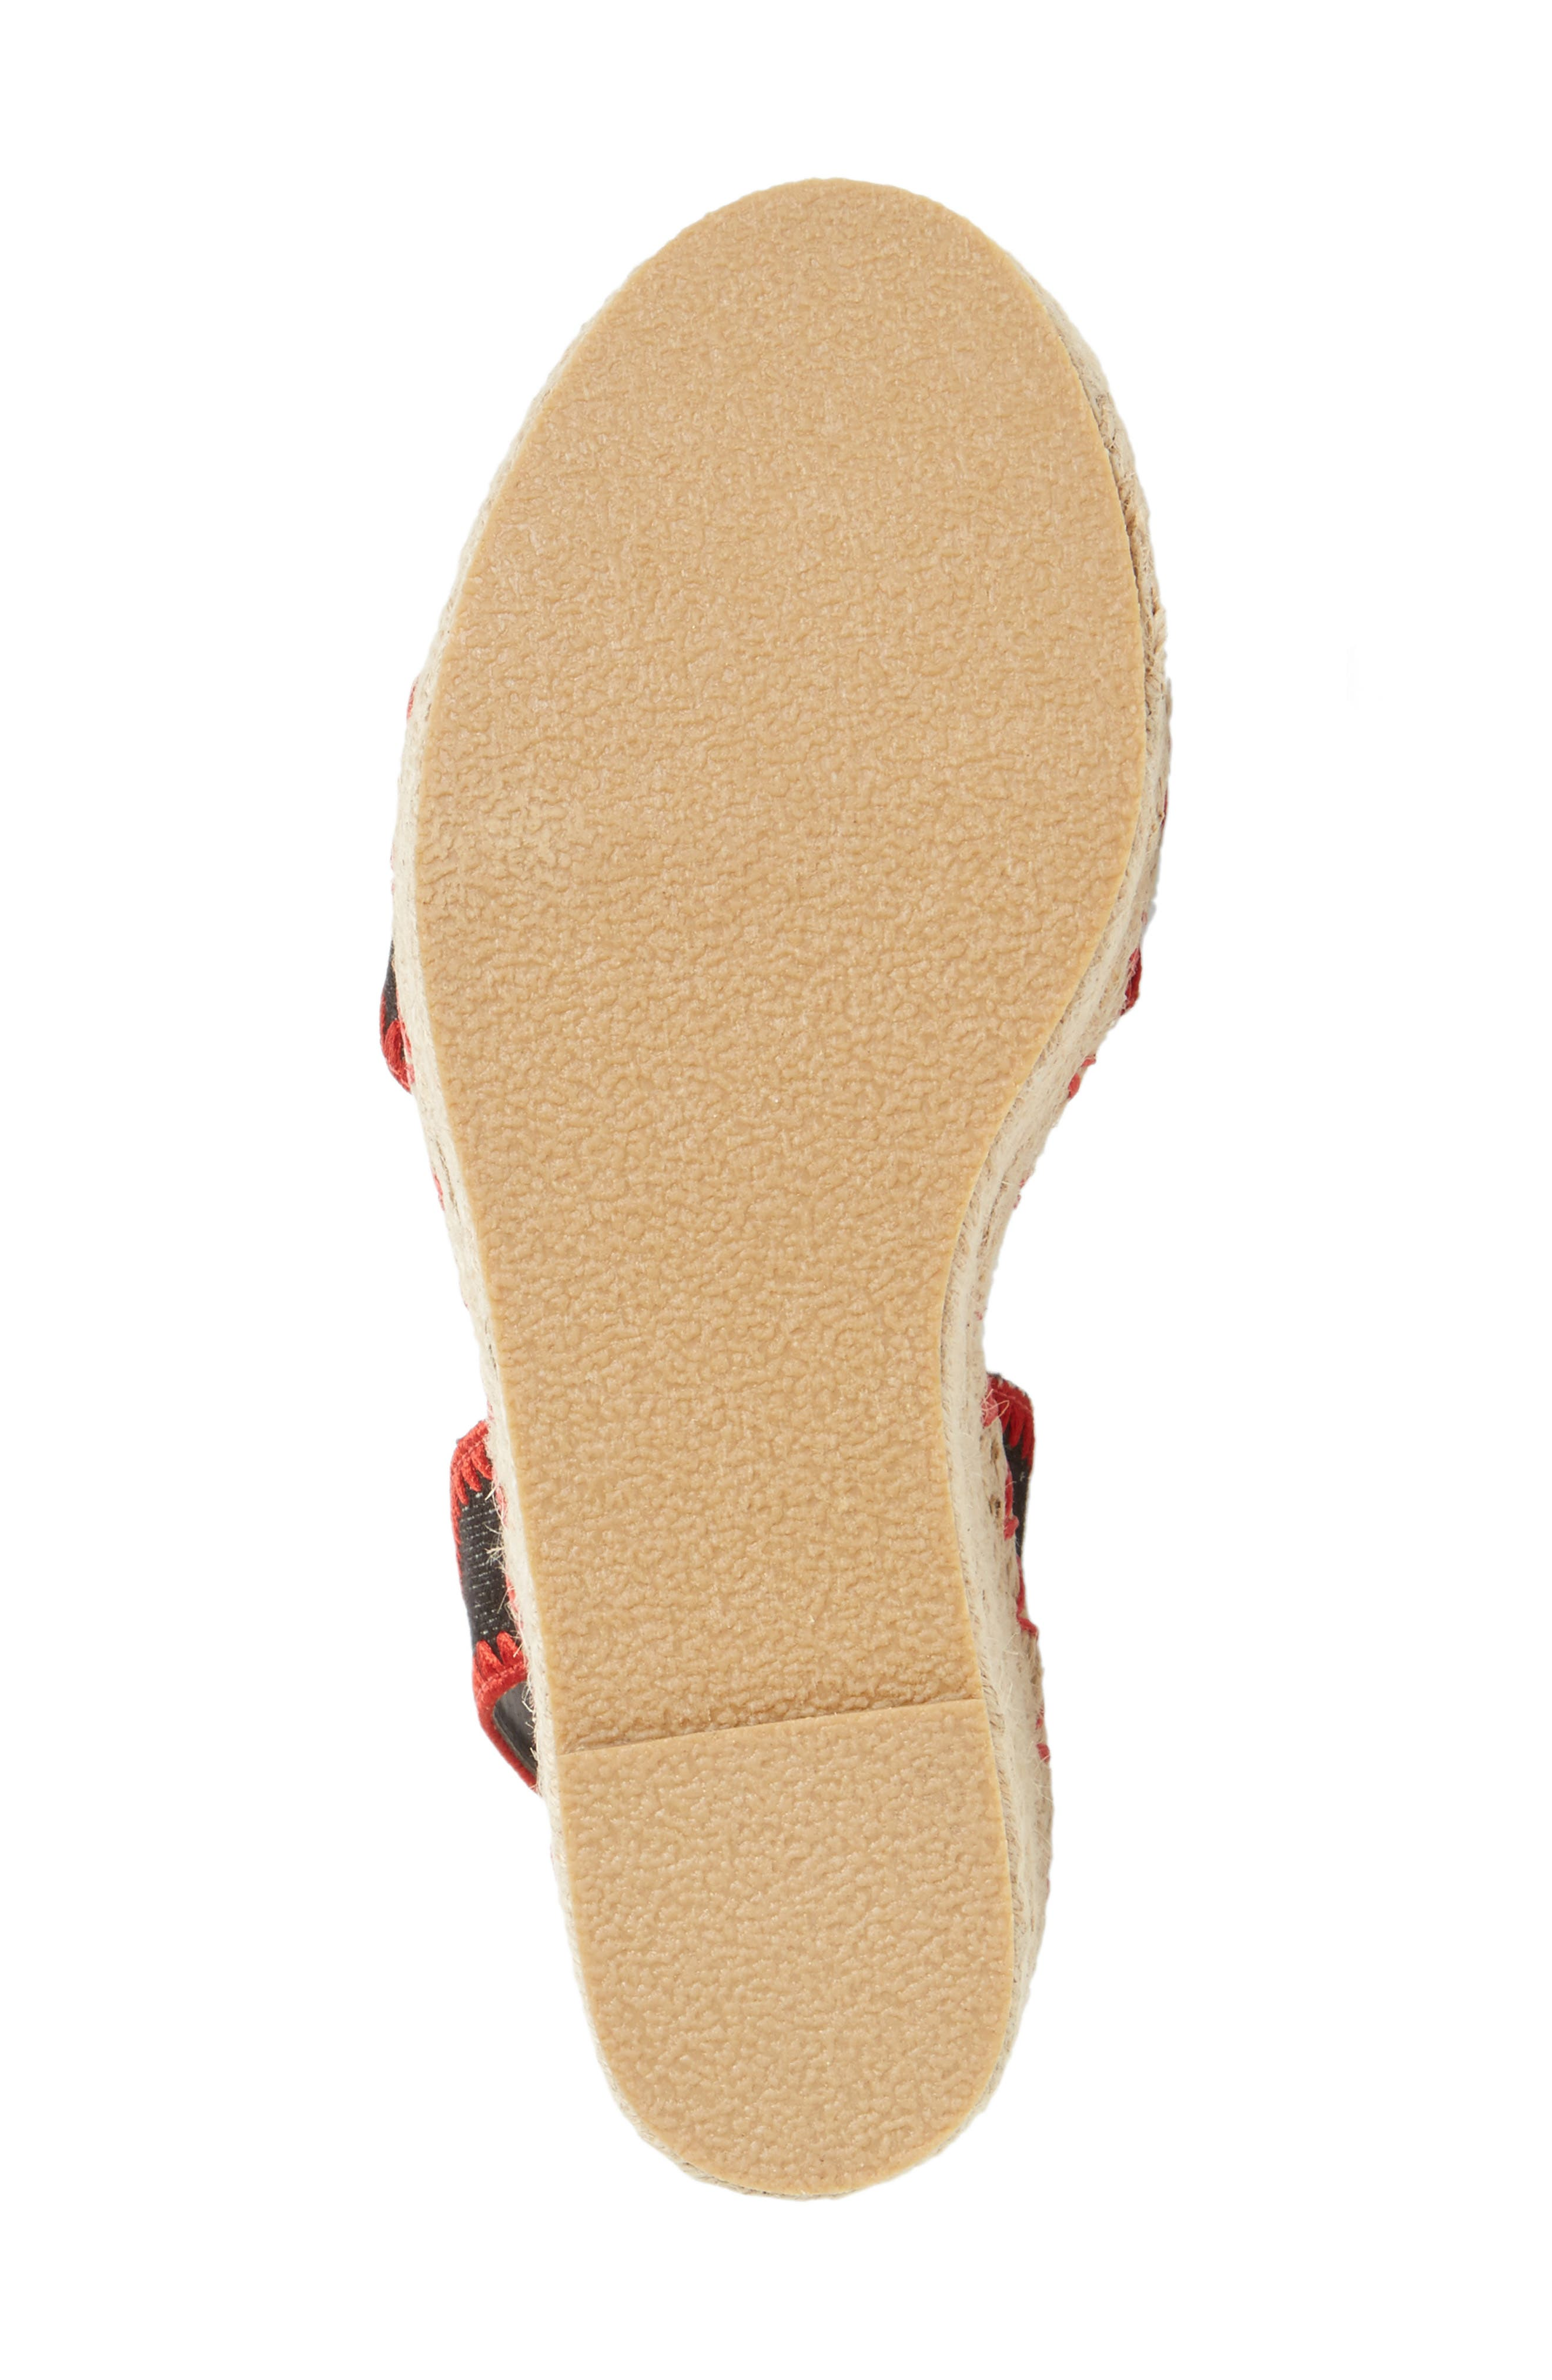 Coconuts by Matisse Frenchie Wedge Sandal,                             Alternate thumbnail 4, color,                             002